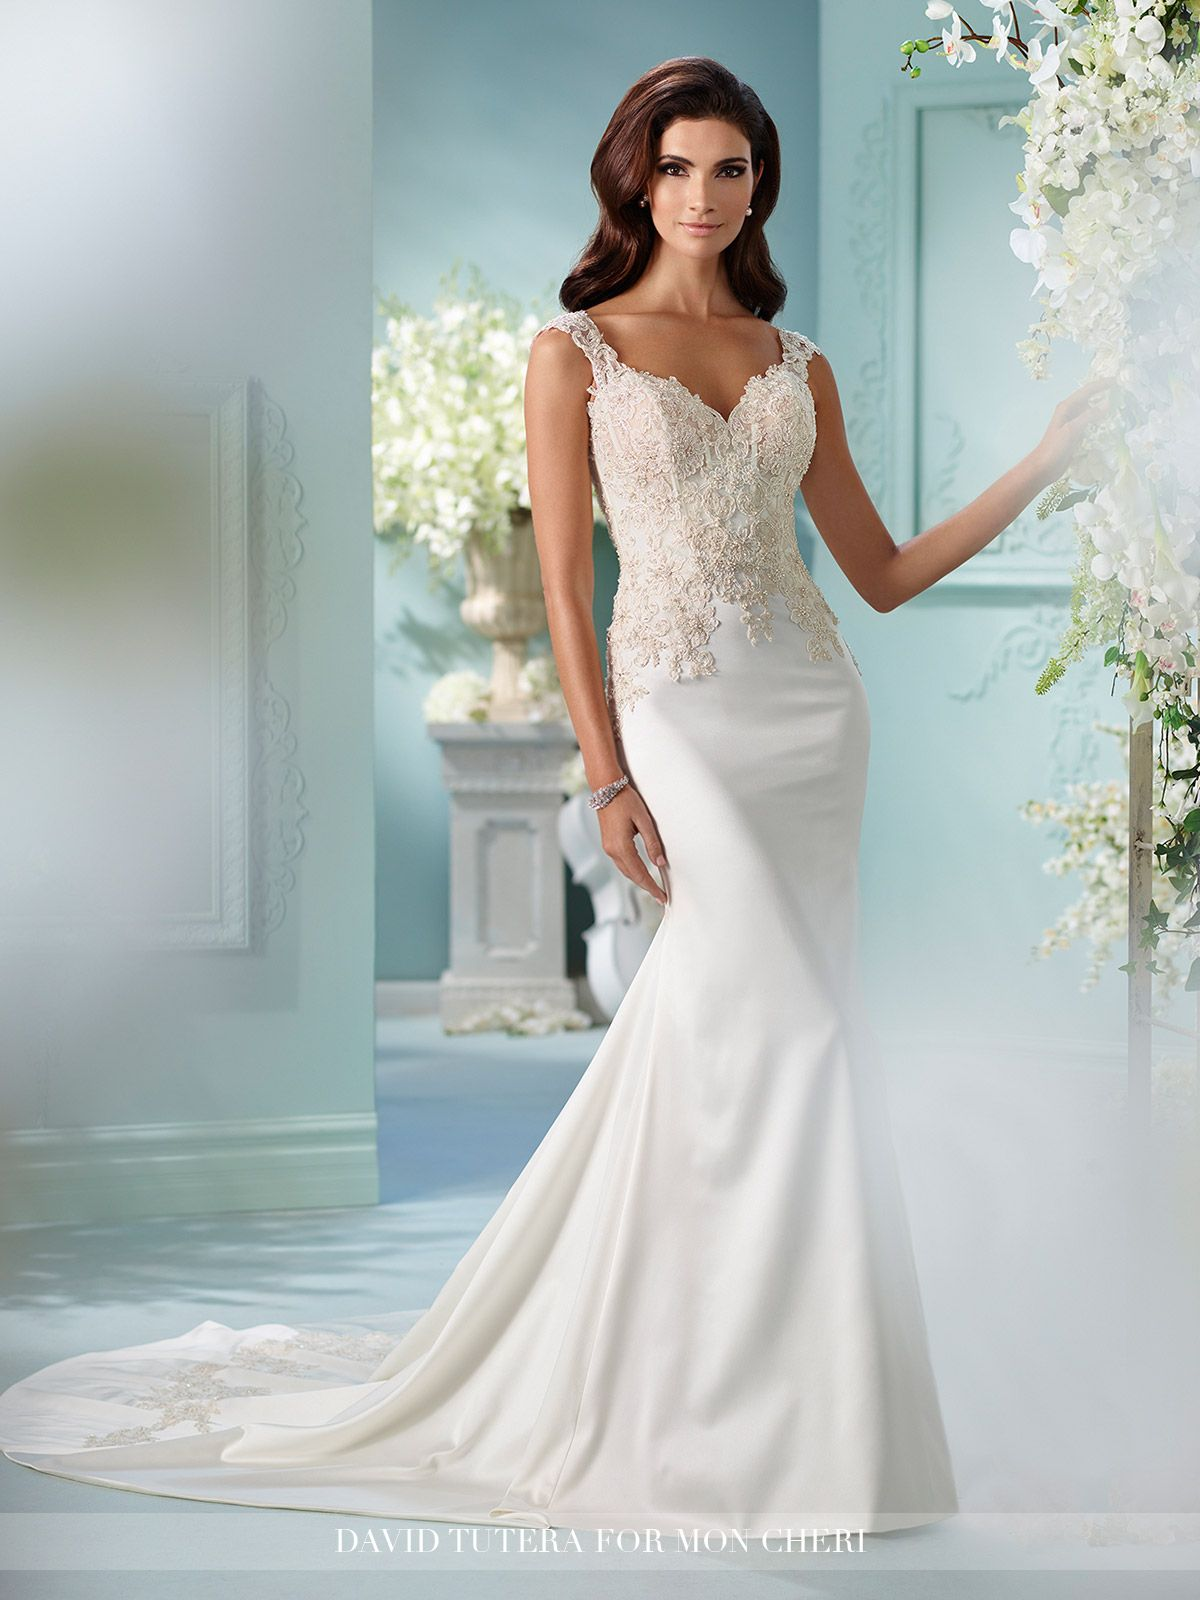 Tulle and Satin Fit & Flare with Lace Cap Sleeves- 216244 Larmina ...